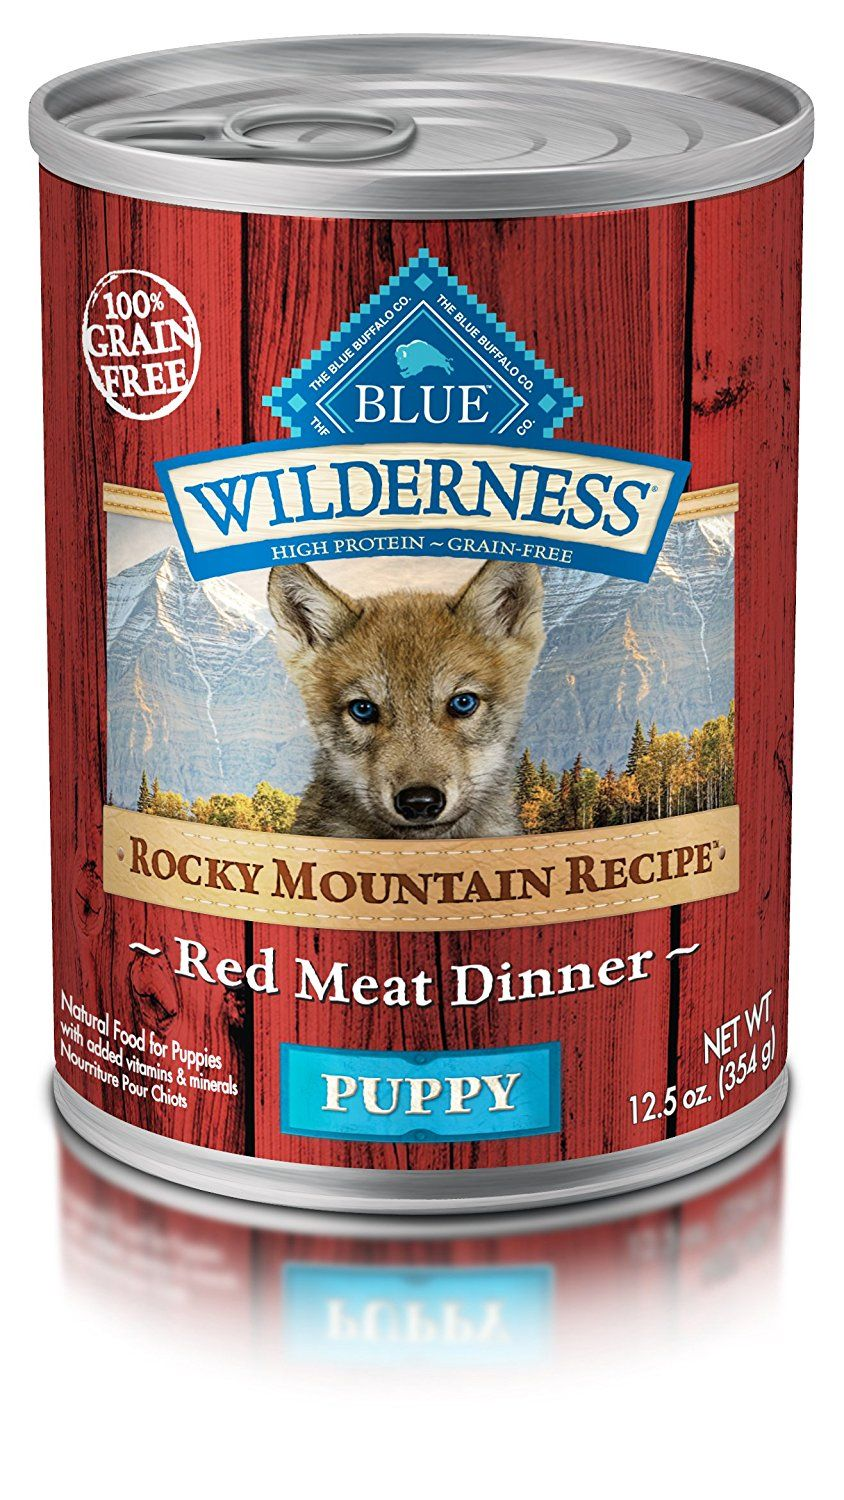 Blue buffalo wilderness high protein wet puppy food you